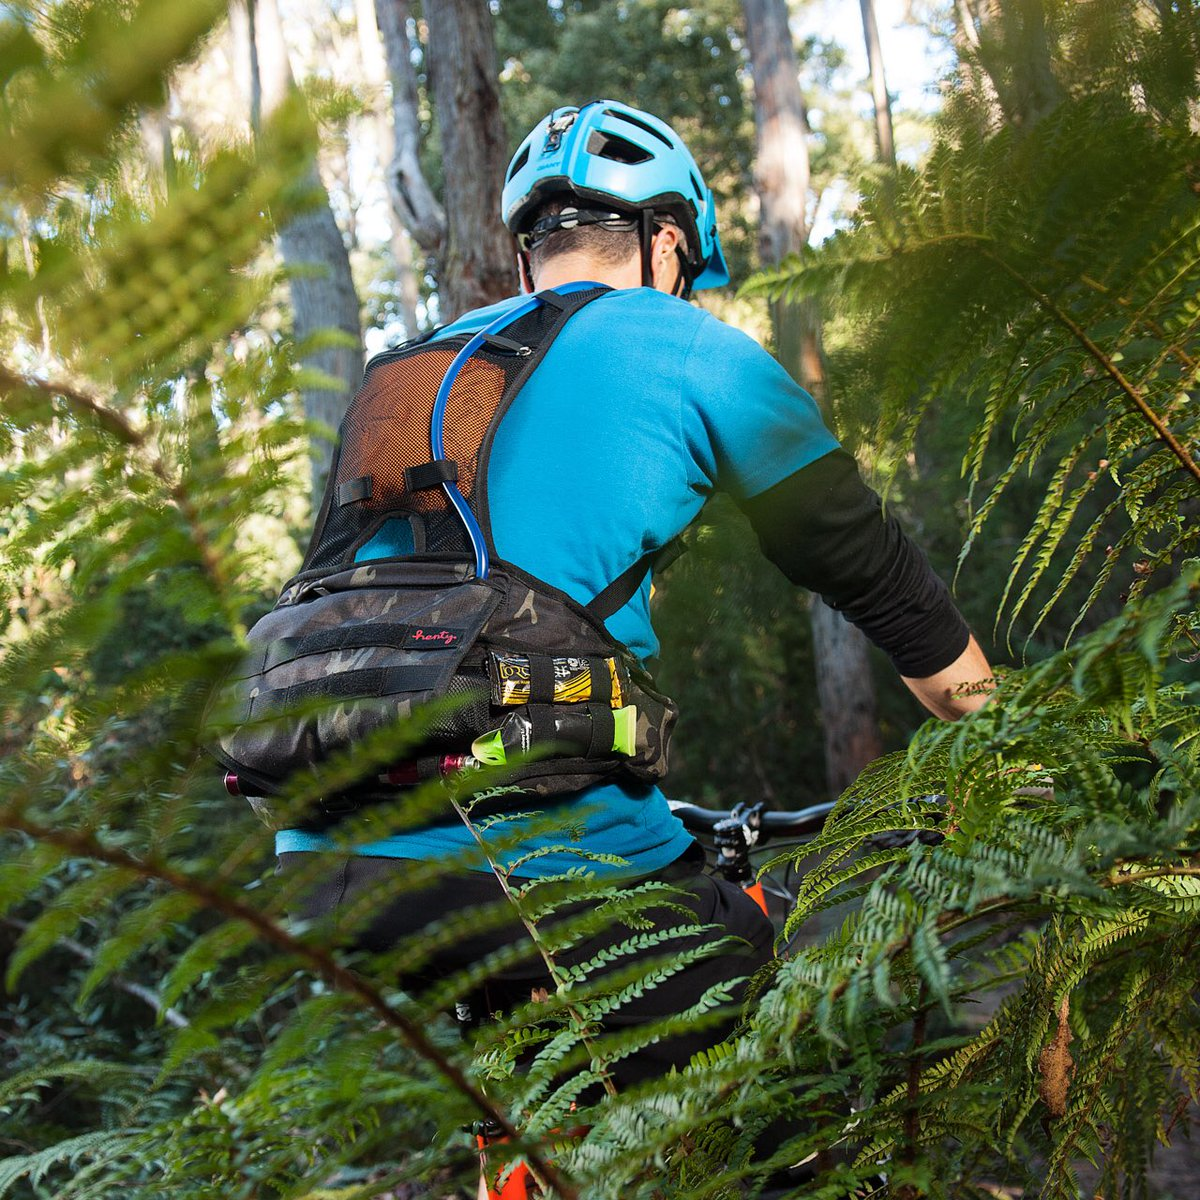 The Enduro pack from @hentydesigns is one tough contender in the hip pack contest! #mtb #gearreviews<br>http://pic.twitter.com/xIN42nBoCG